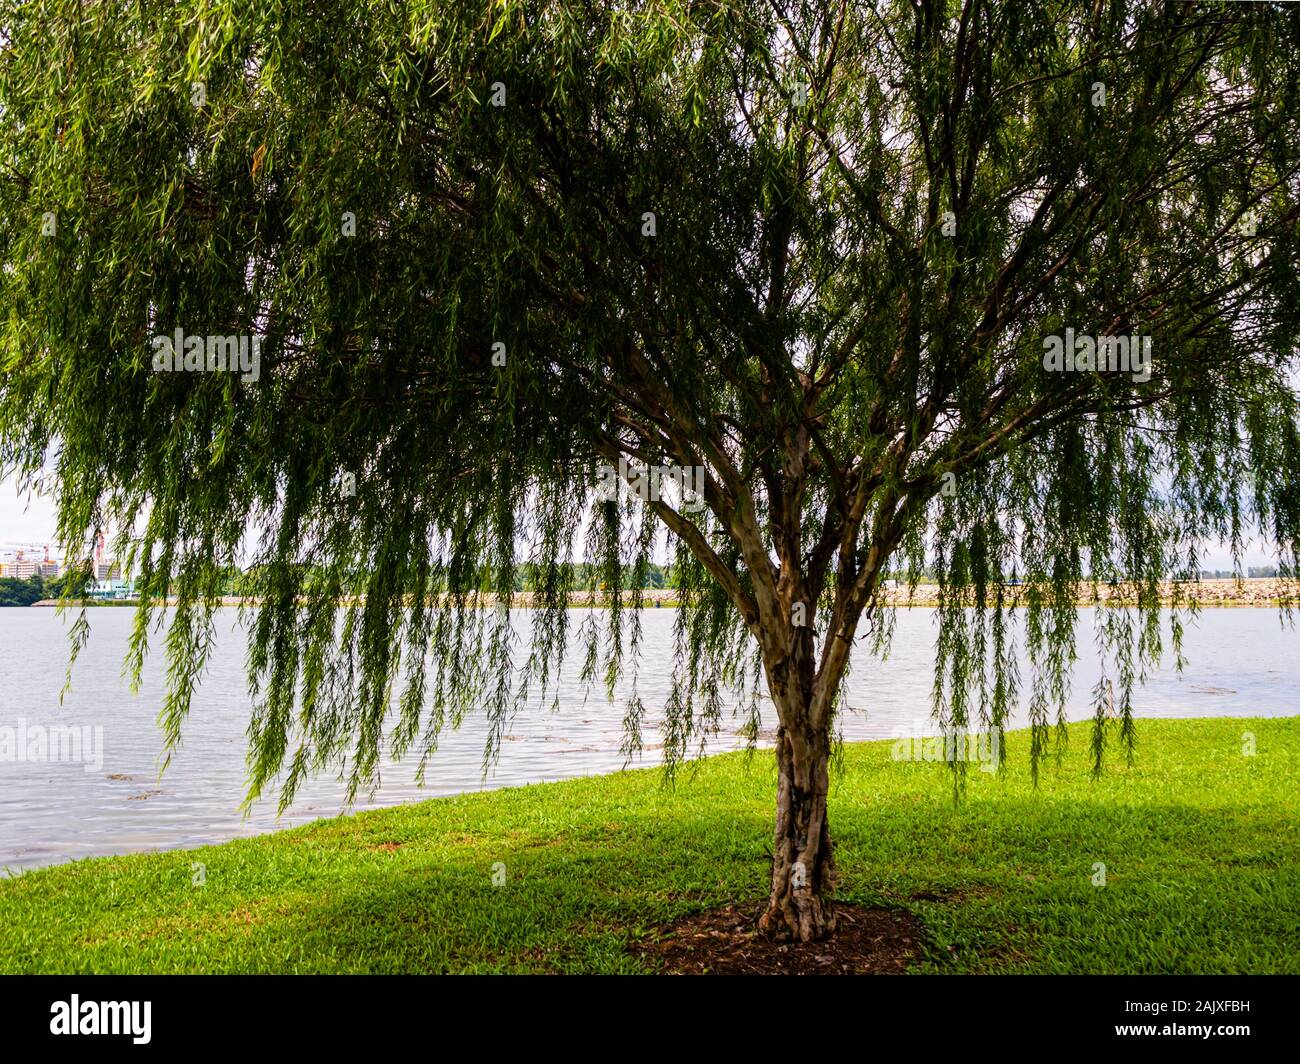 Close Up Of A Large Willow Weeping Willow Tree By The Water In A Nature Park In Yishun Singapore On A Sunny Day Stock Photo Alamy